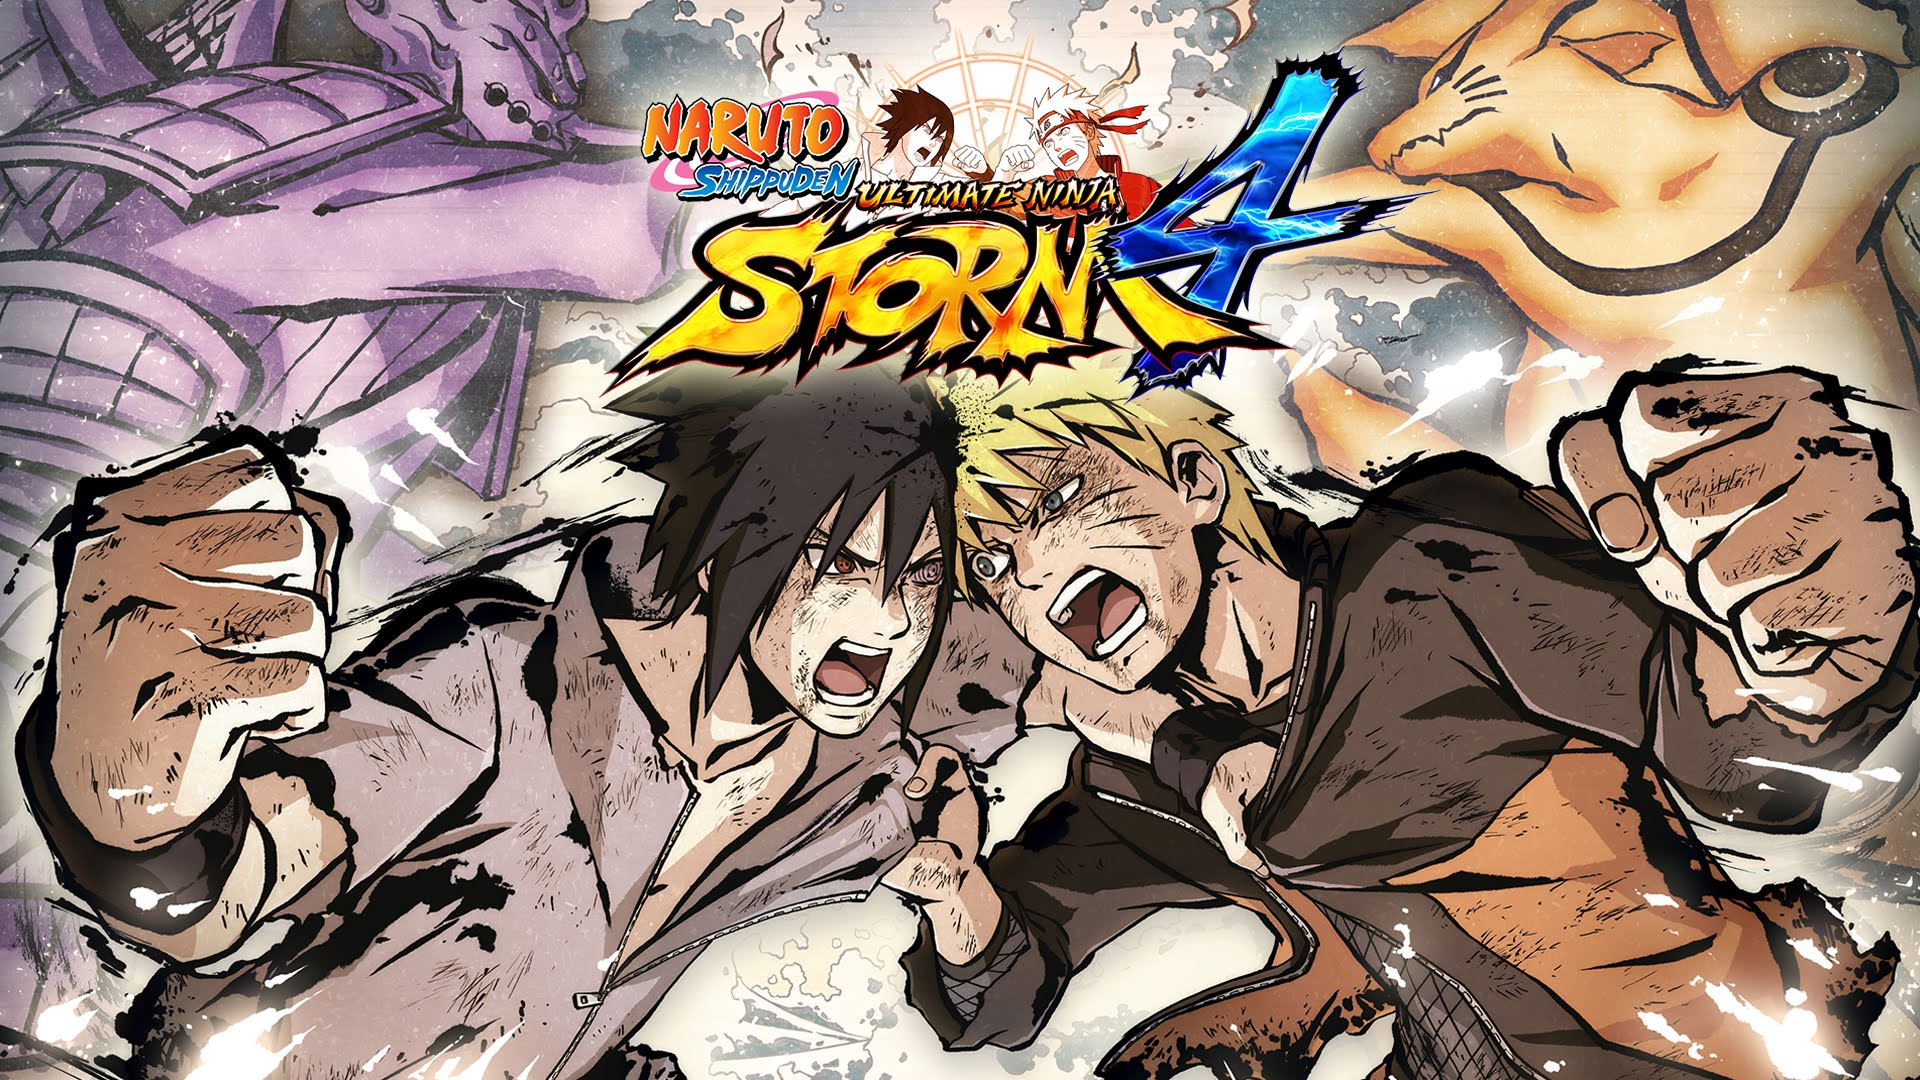 naruto shippuden ultimate ninja storm 4 download Archives - CroTorrents